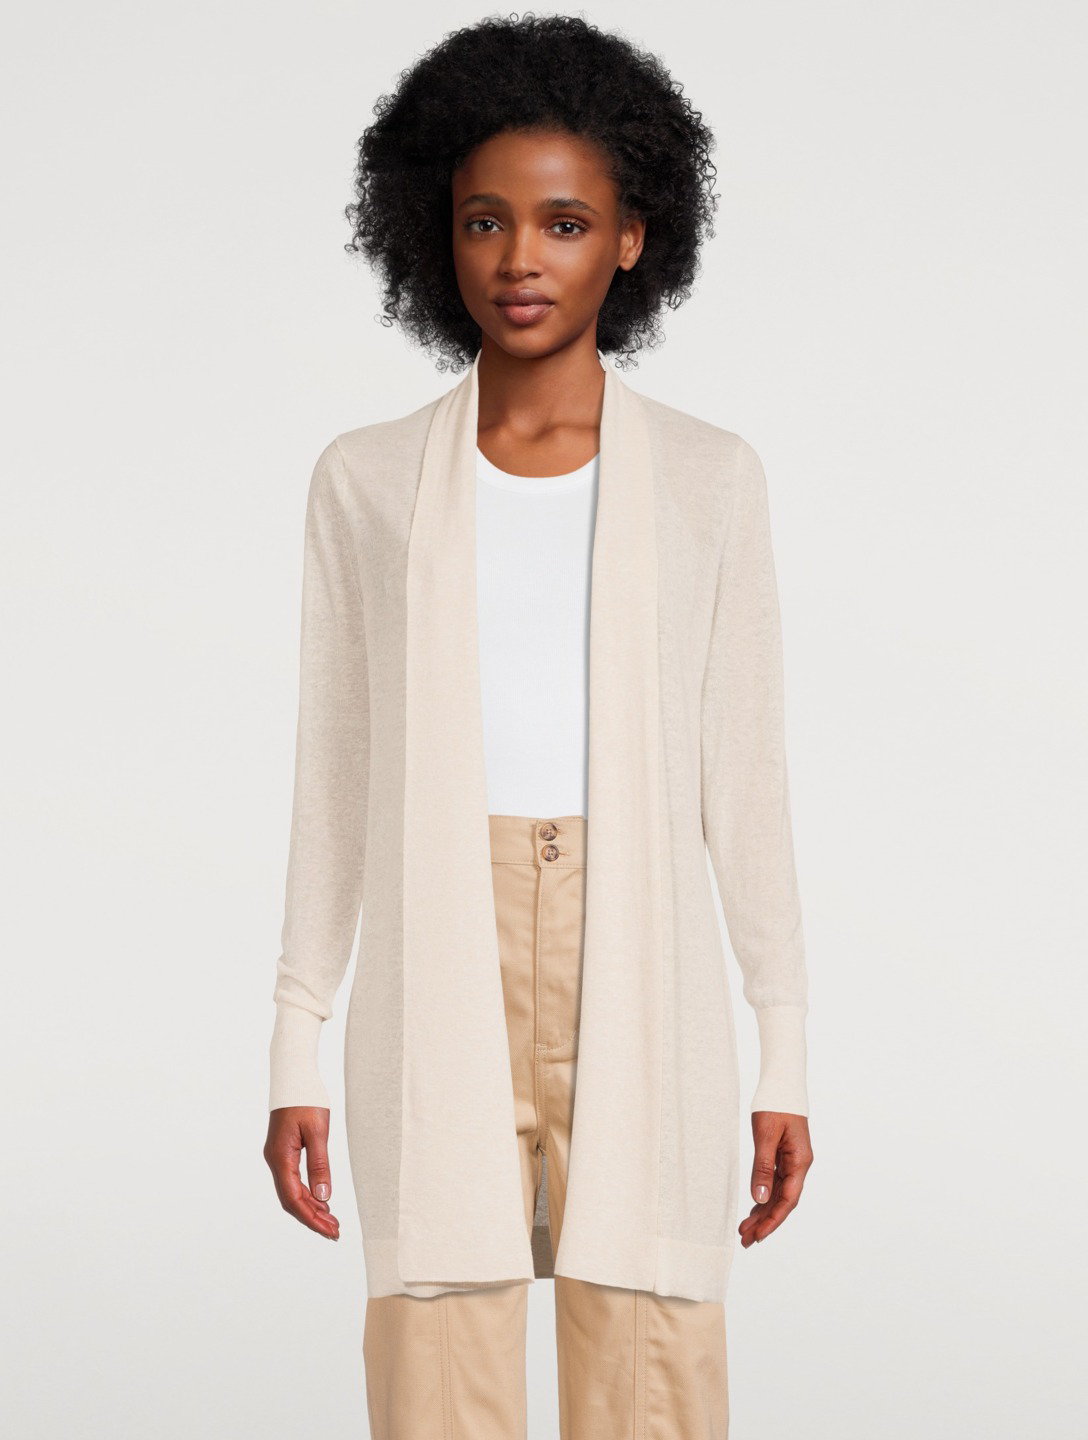 WHITE + WARREN Cotton And Linen Open Cardigan Women's Beige